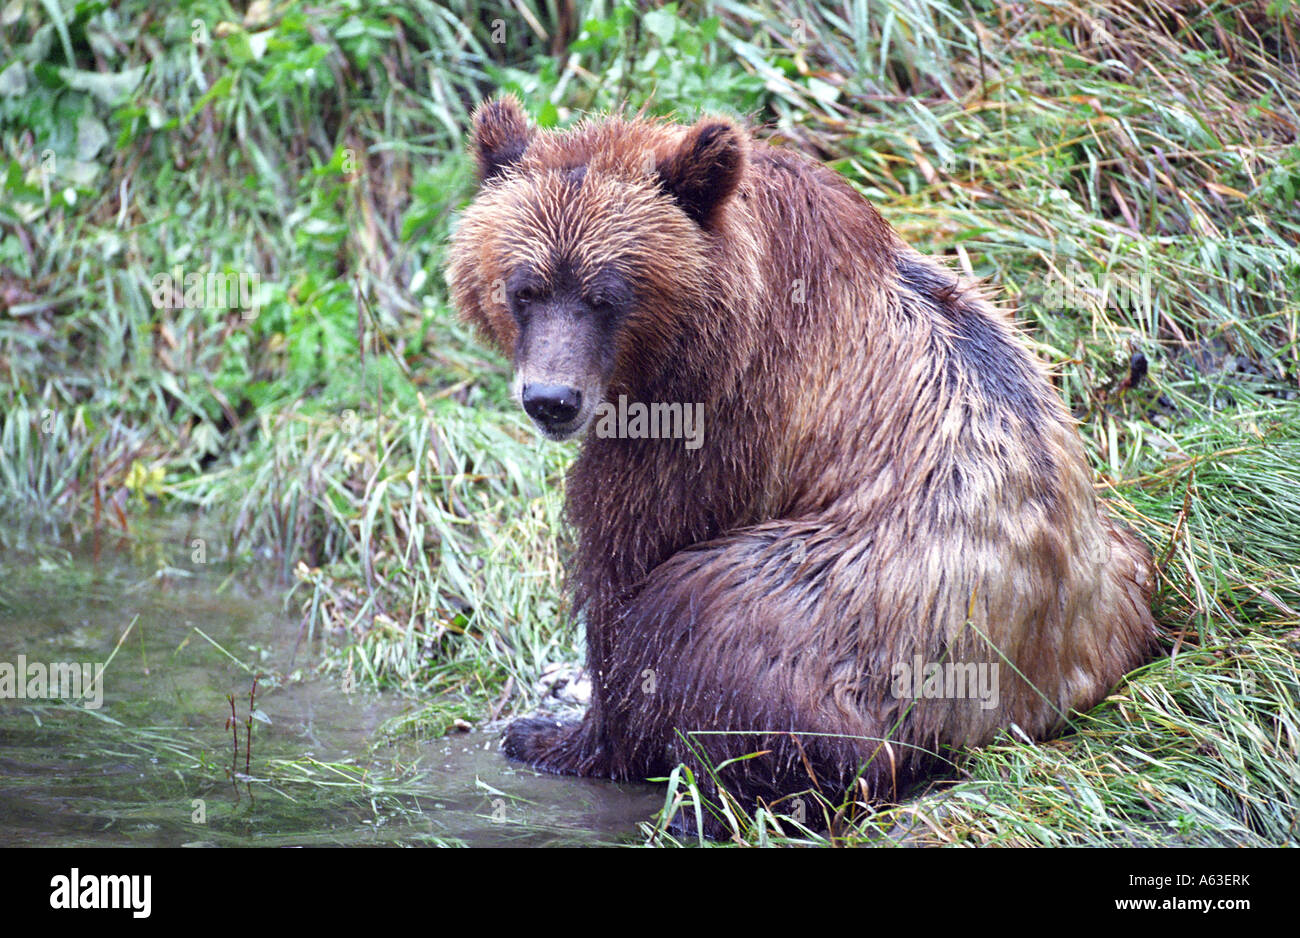 Grizzly bear sitting up - photo#42